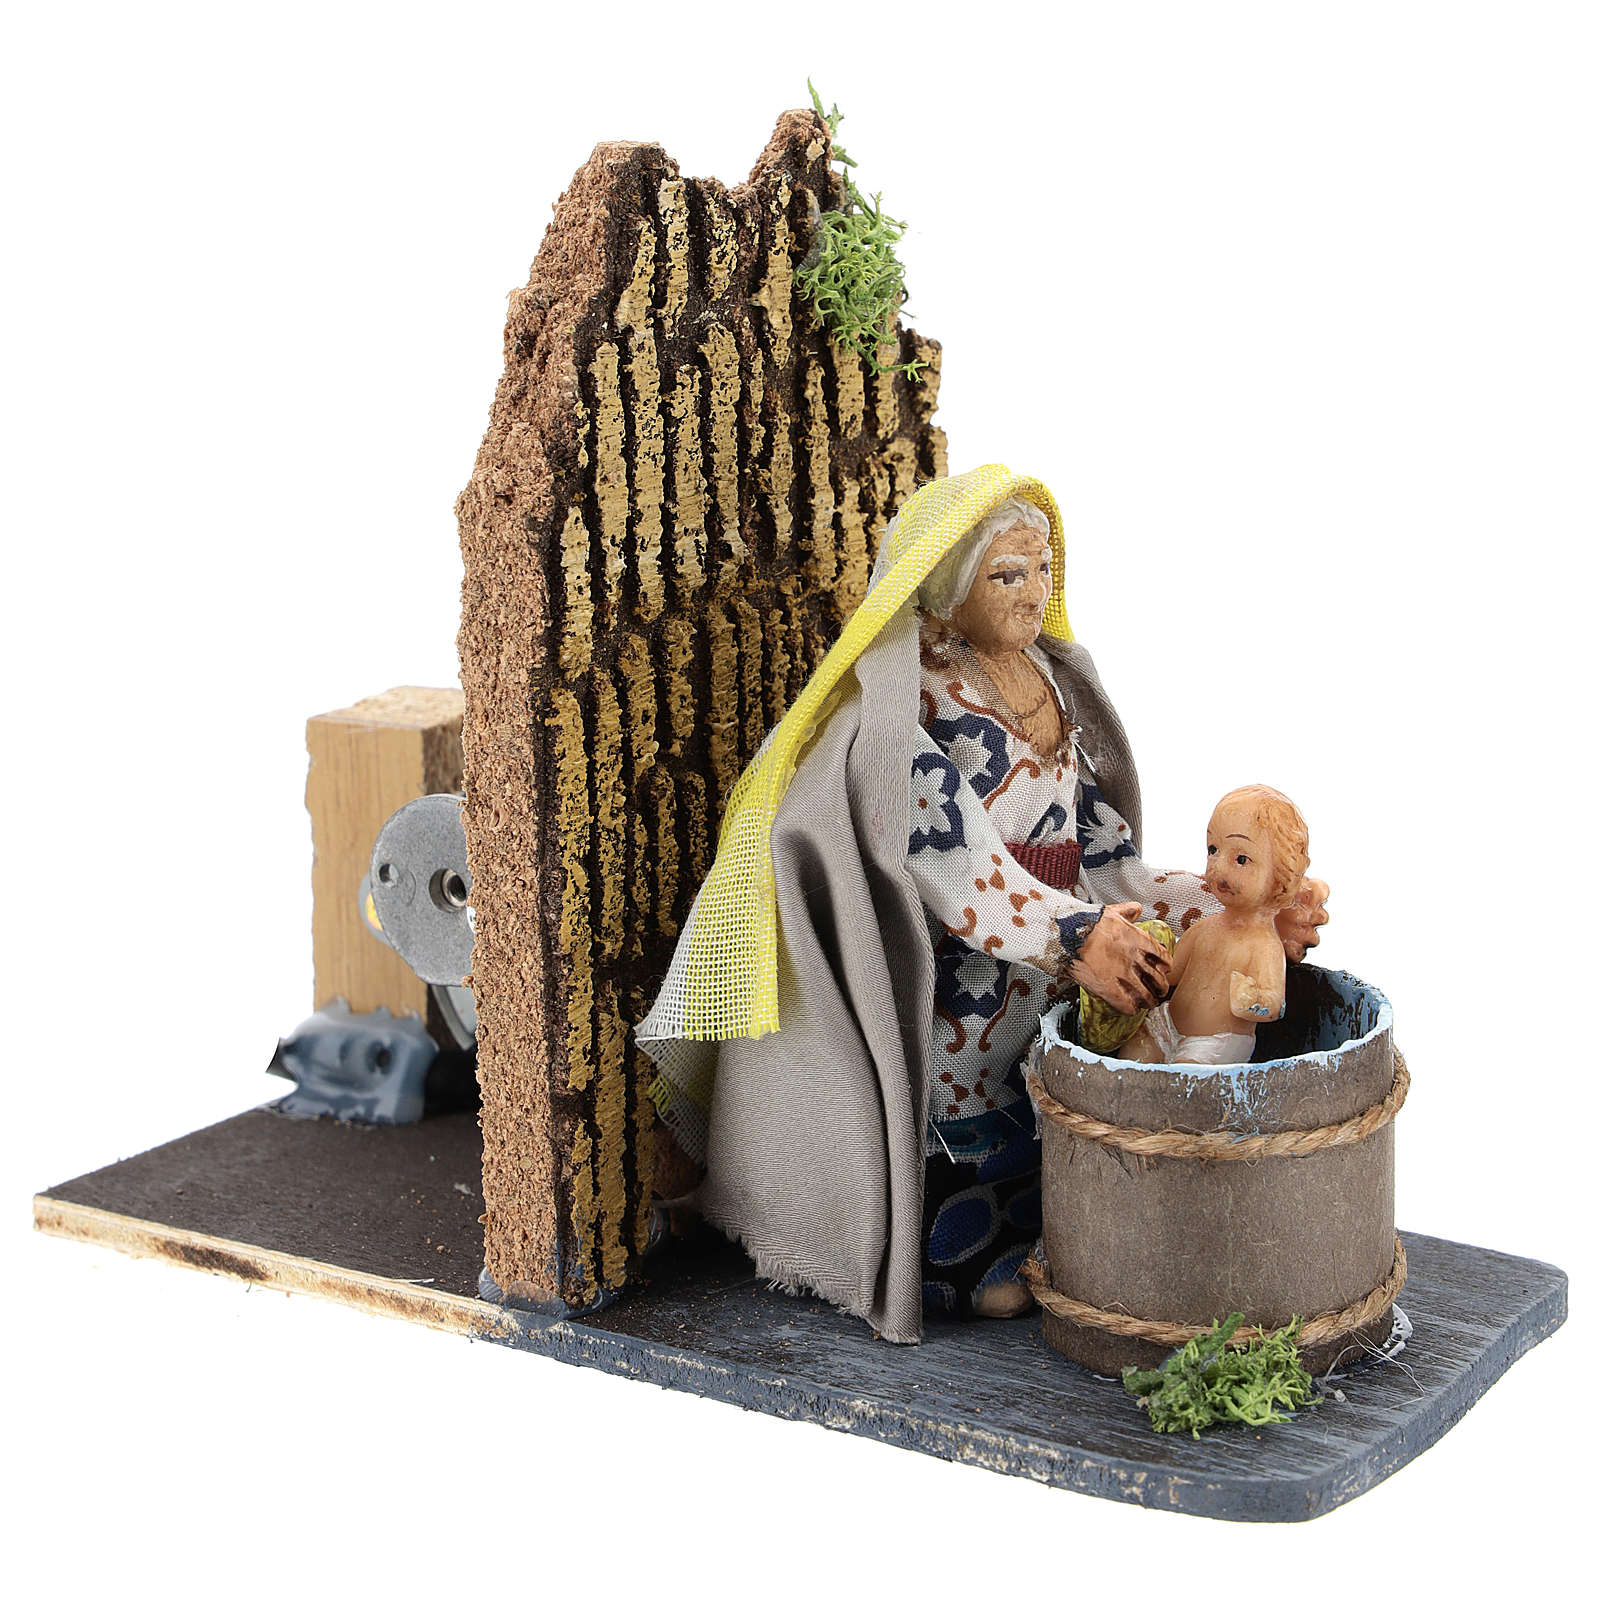 Moving woman washing baby for Neapolitan Nativity Scene 7 cm 4